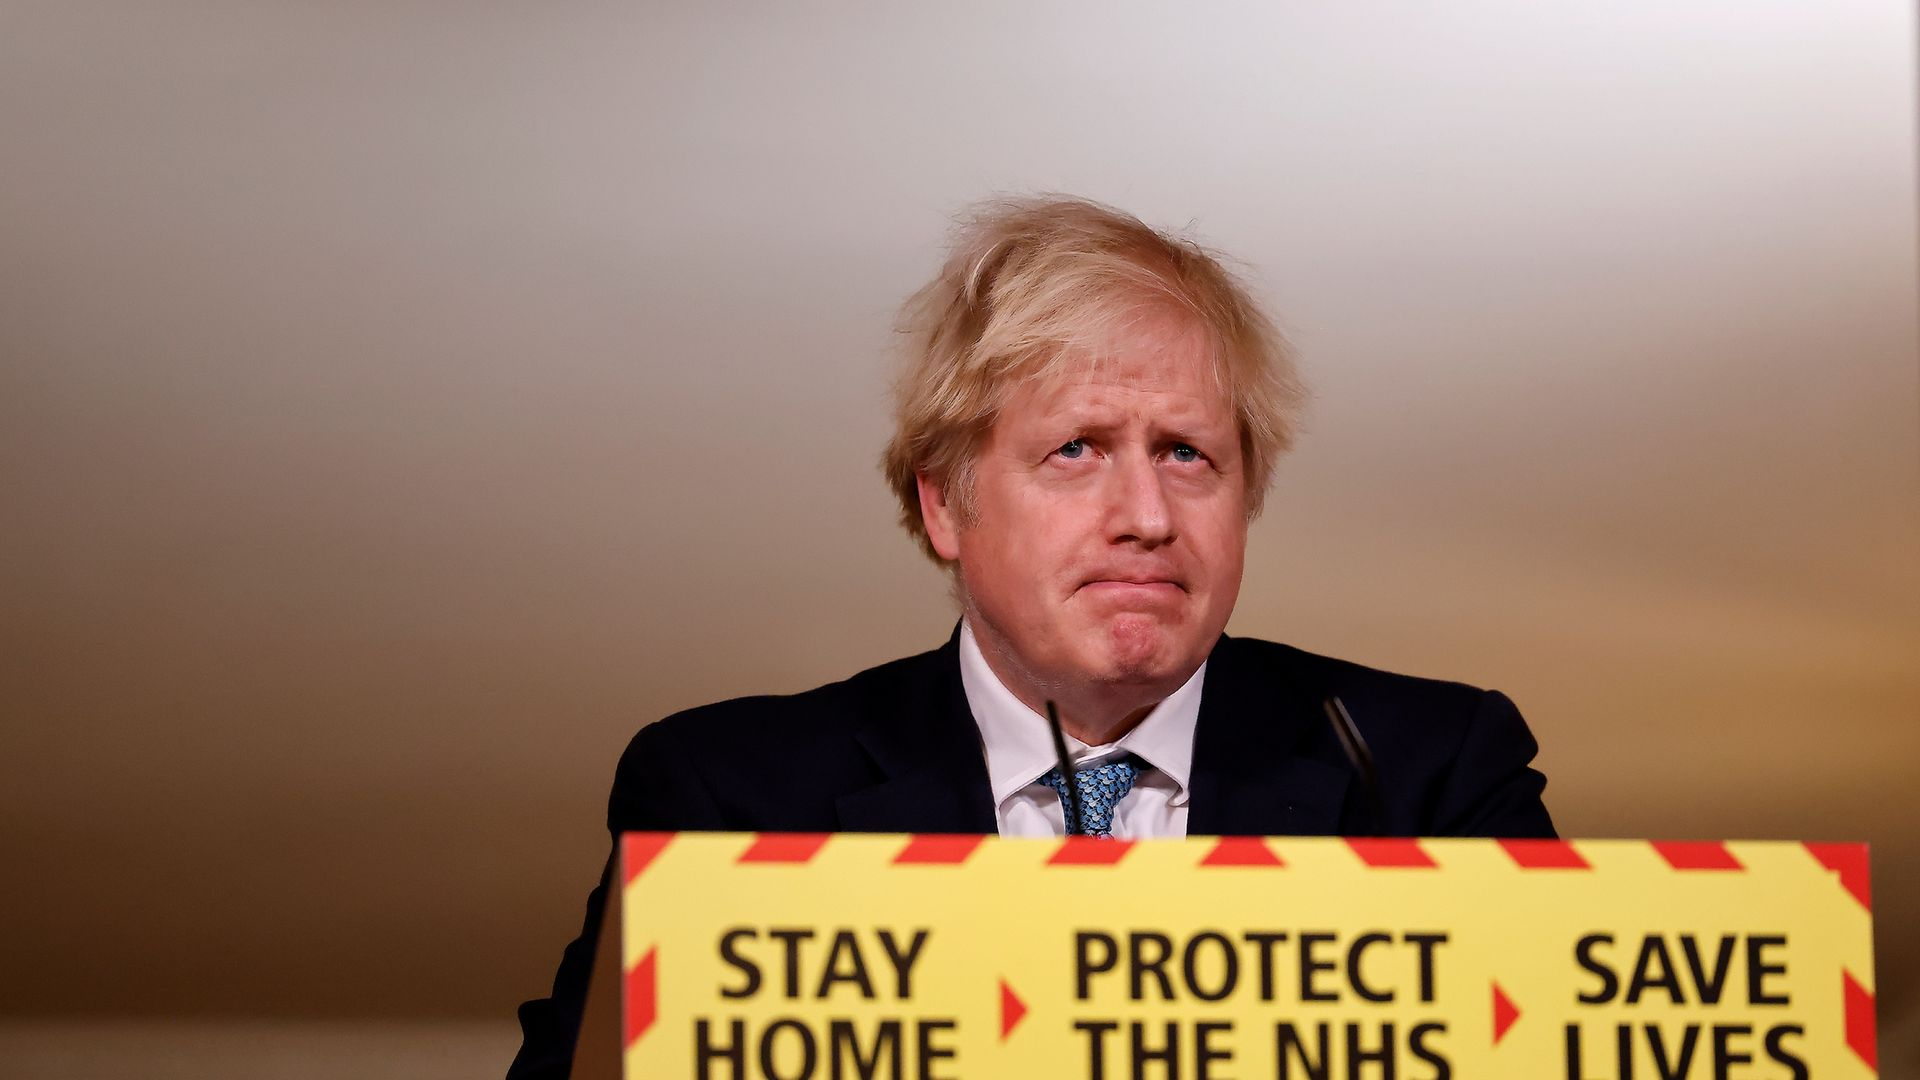 Prime Minister Boris Johnson during a media briefing on coronavirus (COVID-19) in Downing Street, London. - Credit: PA